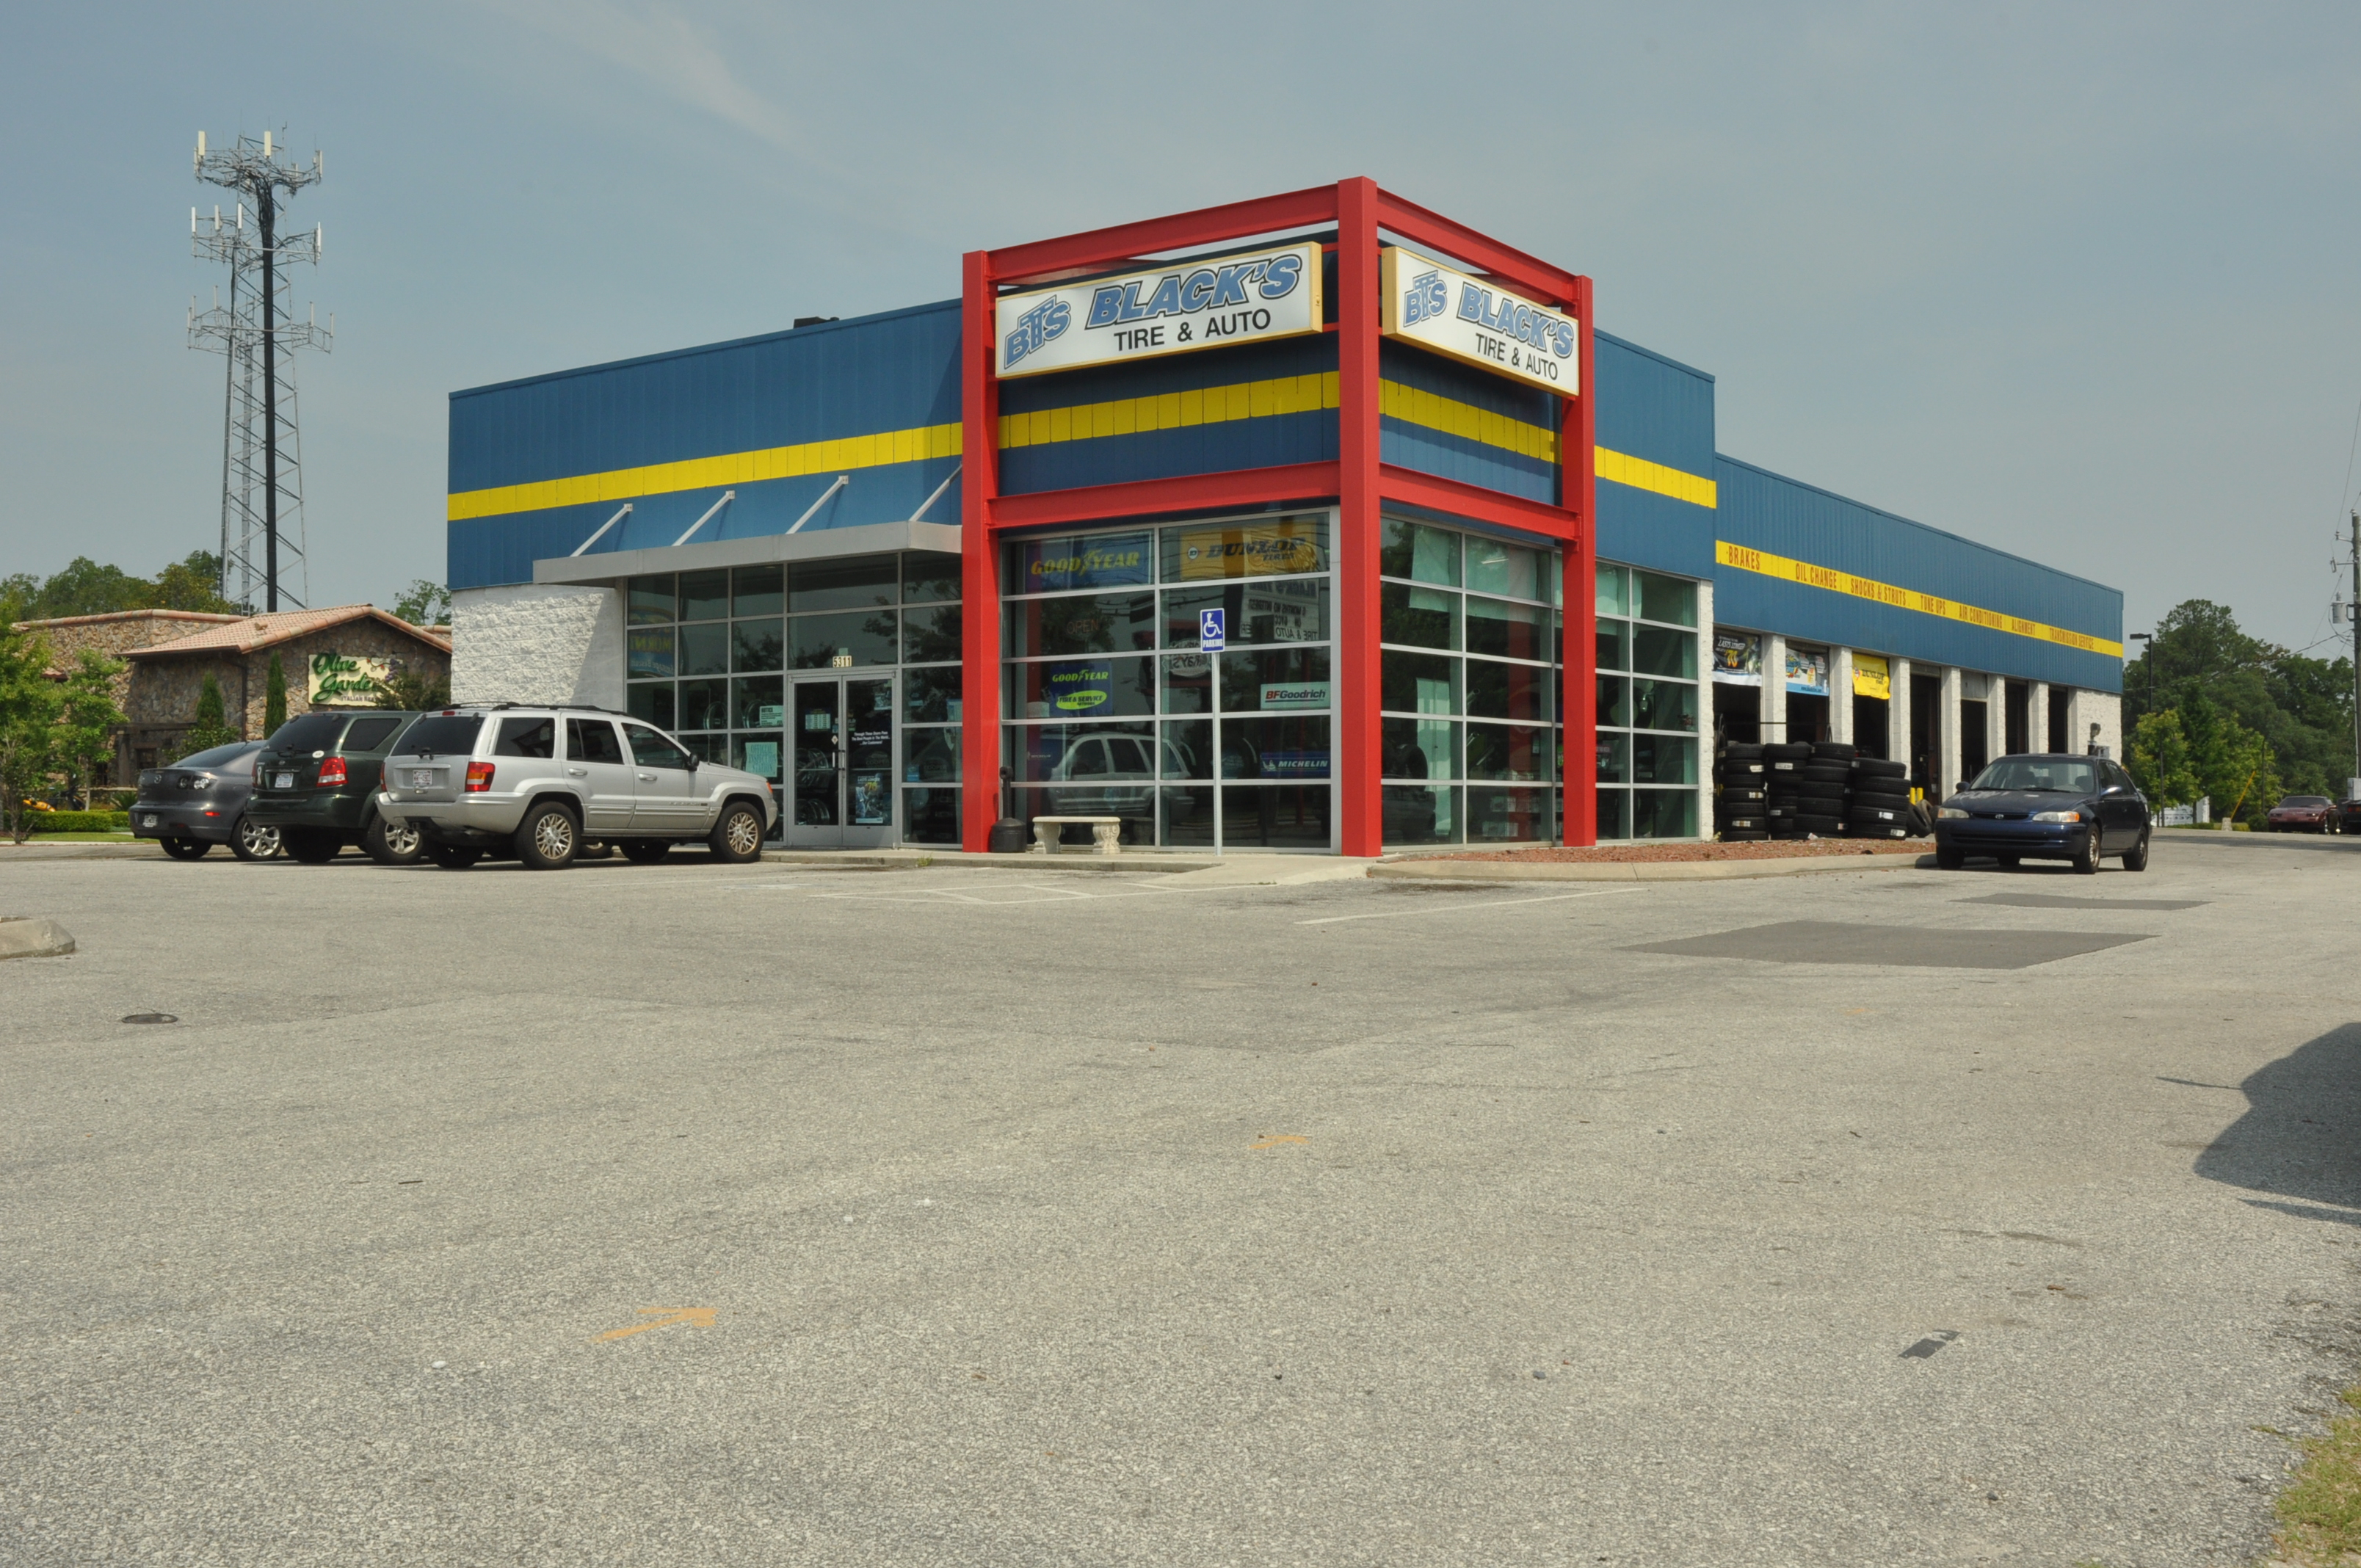 Jun 12,  · Sears expands tire services deal with Amazon. Sears is expanding the list of stores where customers can get their vehicles serviced with tires purchased on Amazon.